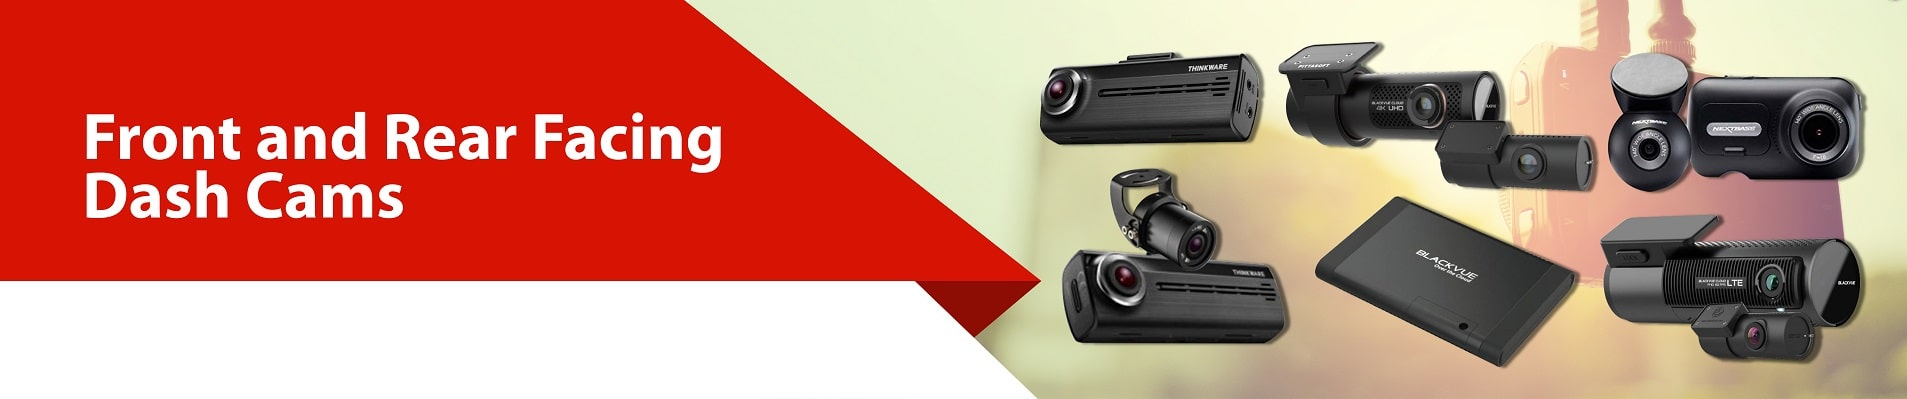 Front and rear facing dash cams